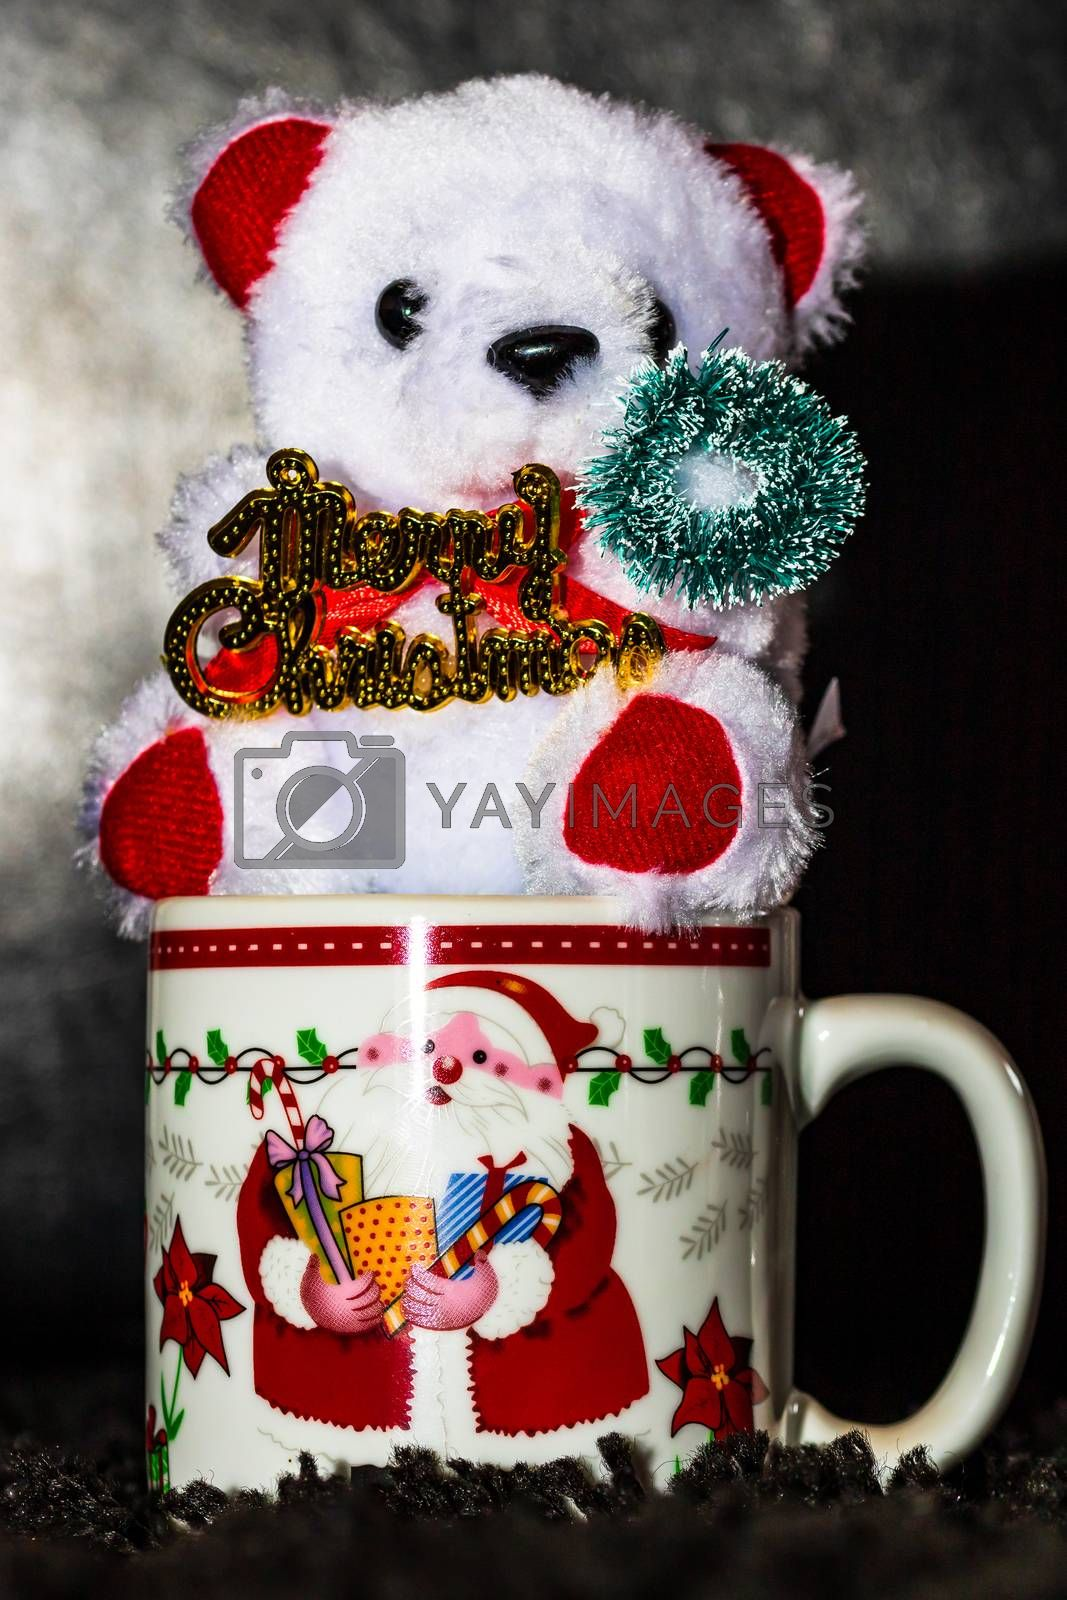 Decorated teddy bear in a Christmas cup isolated on black.  Bucharest, Romania, 2020.